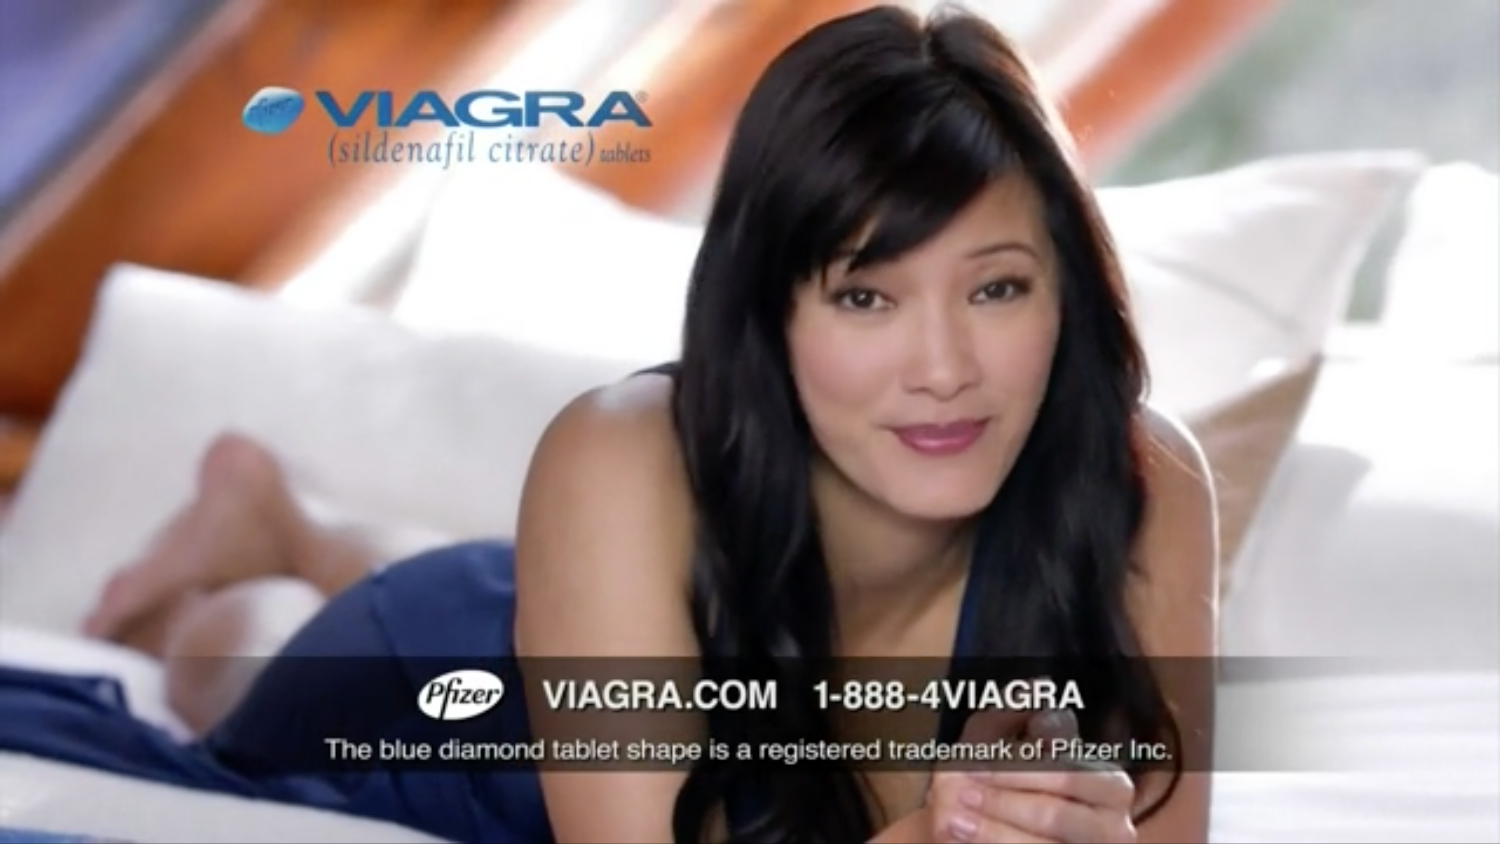 Is viagra for women